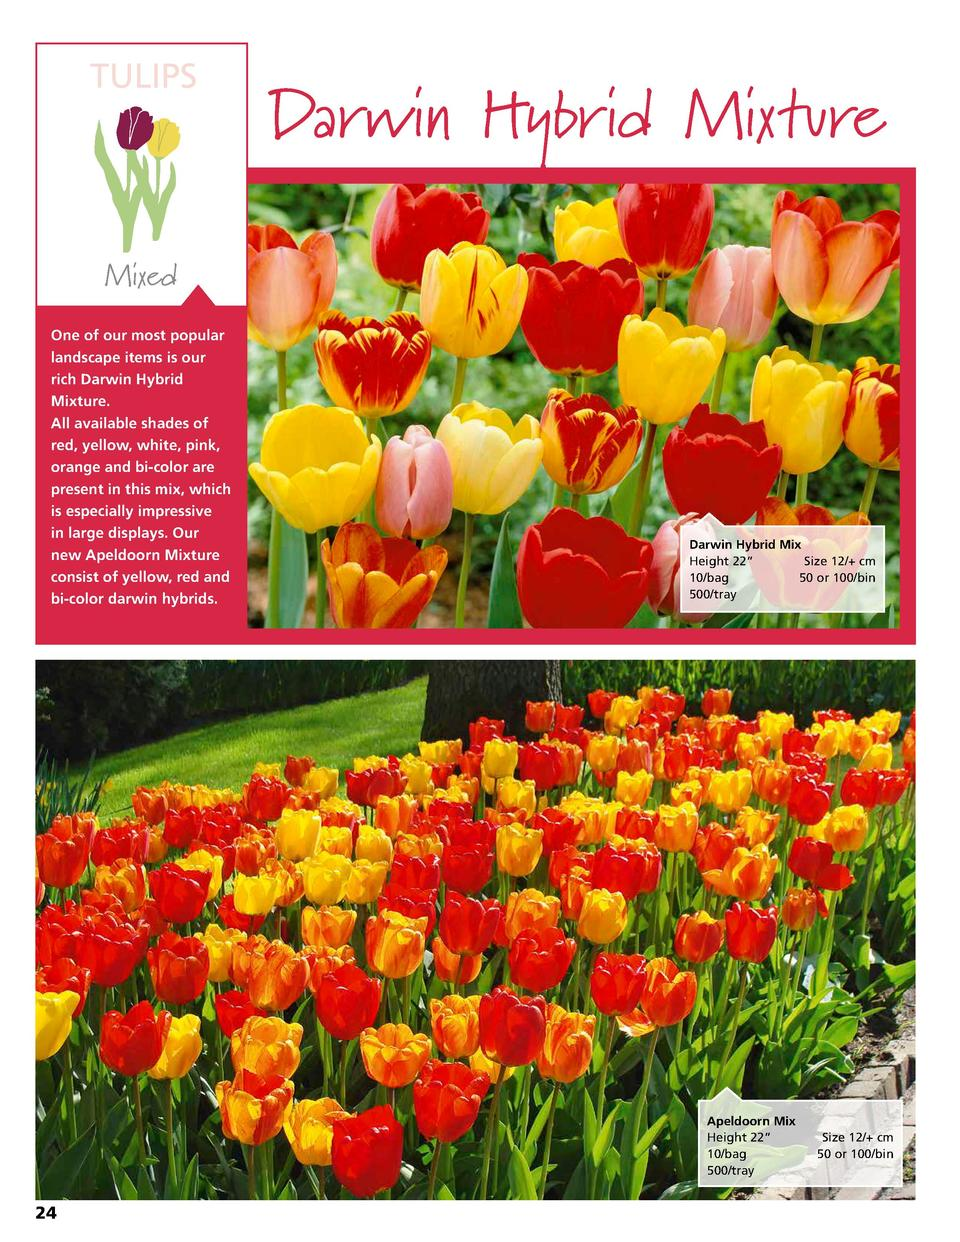 TULIPS  Darwin Hybrid Mixture  Mixed One of our most popular landscape items is our rich Darwin Hybrid Mixture. All availa...